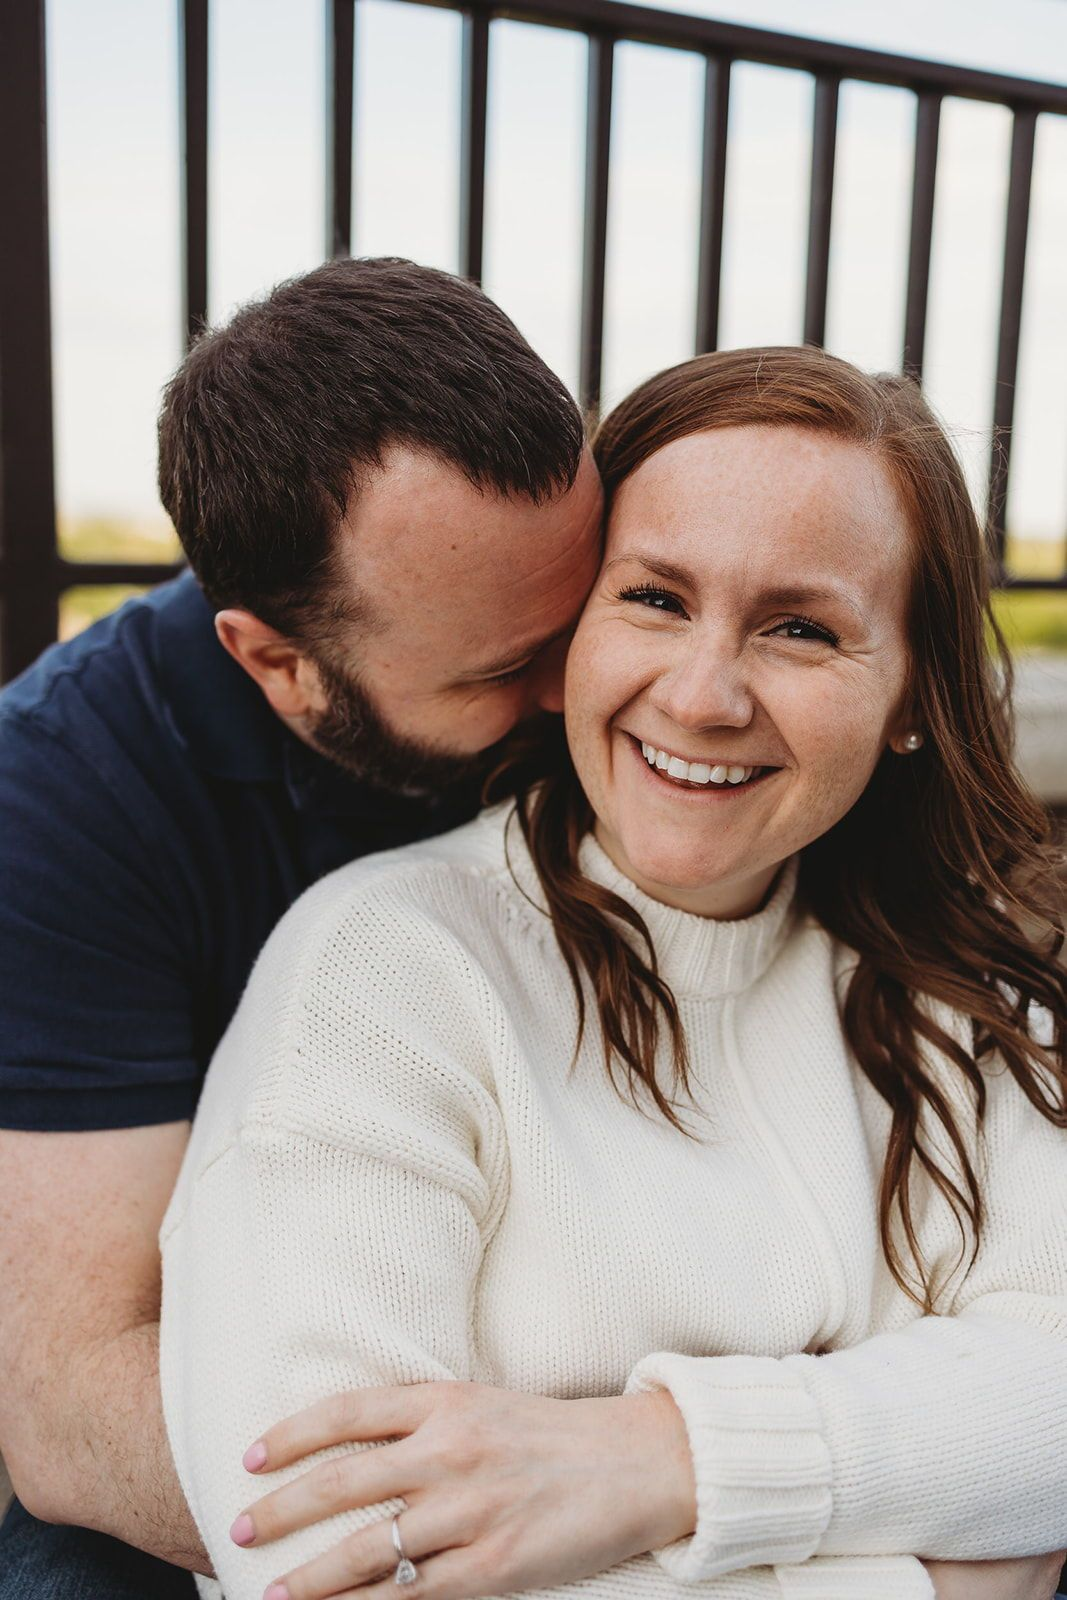 Cute engagement session at western michigan university in park. Perfect inspiration for couples photo shoot poses ideas. Fiance kissing her neck and showing off her engagement ring. Engagement photo shoot inspiration in fall! Traveling Wedding and Couples Photographer. Lindsay Elaine Photography.